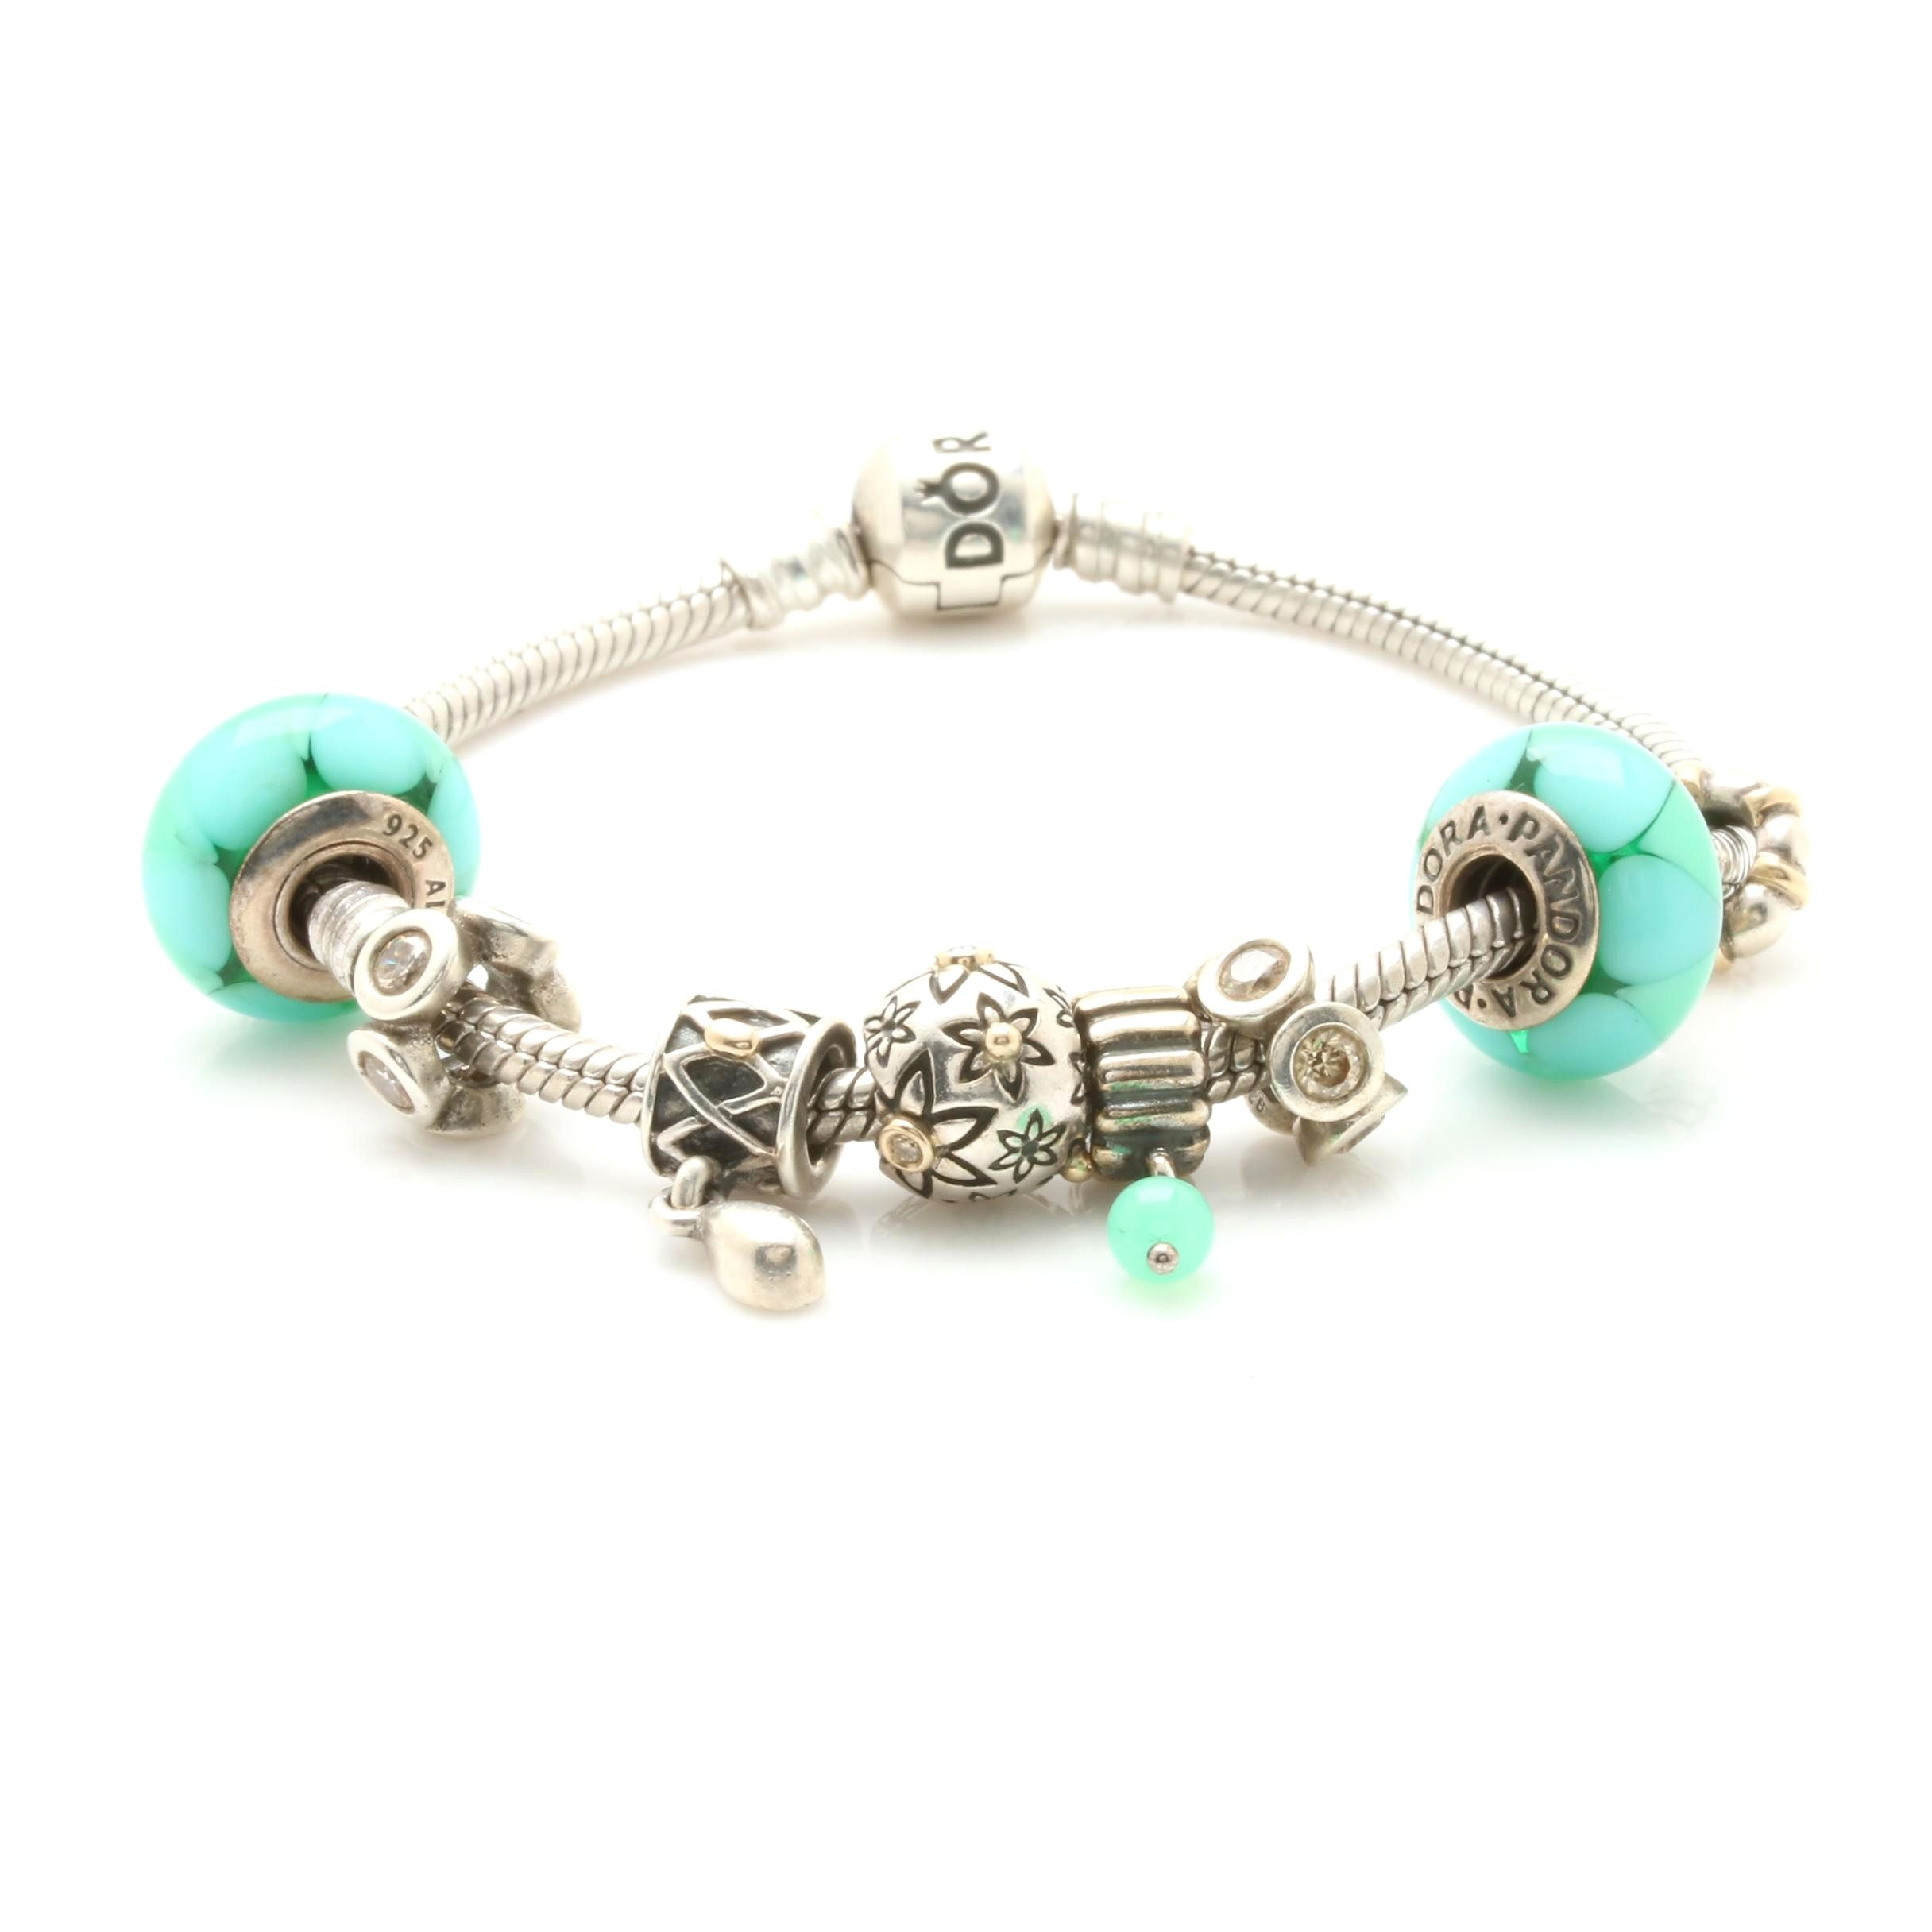 Pandora Sterling Silver Charm Bracelet With 14K Gold Accents and Diamonds